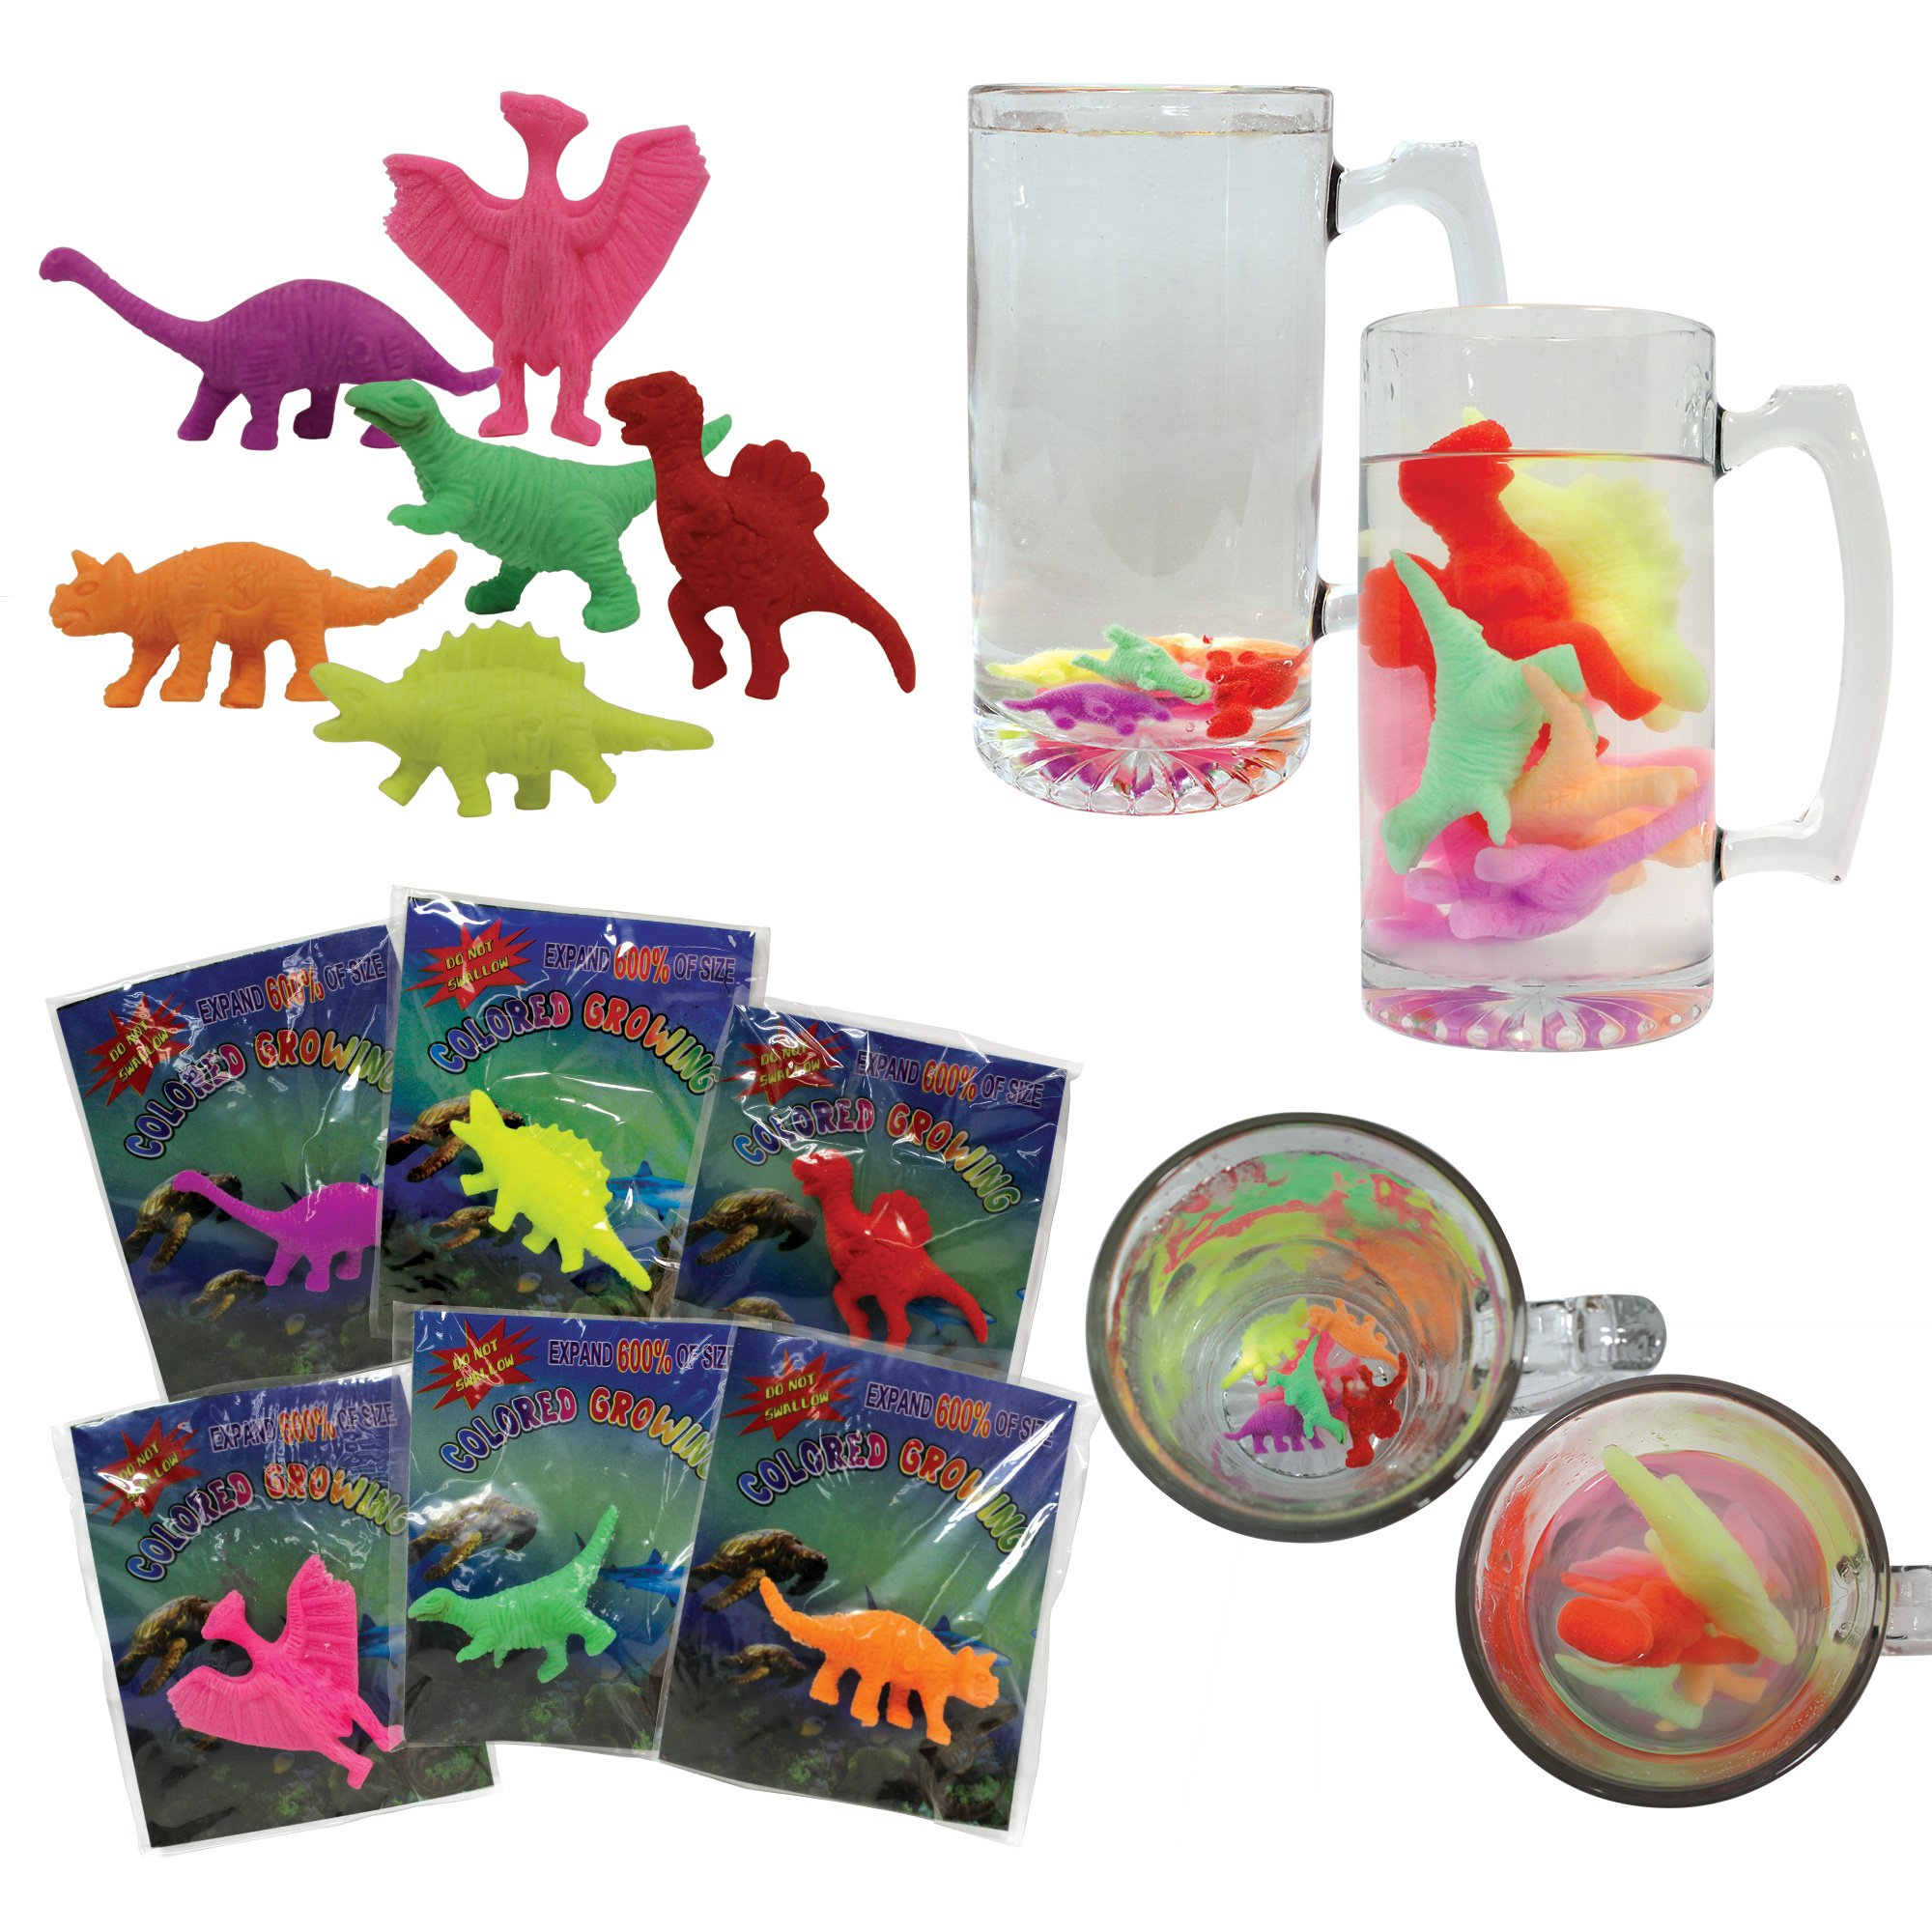 Growing Dinosaurs Action Figure (12 Pack) 12